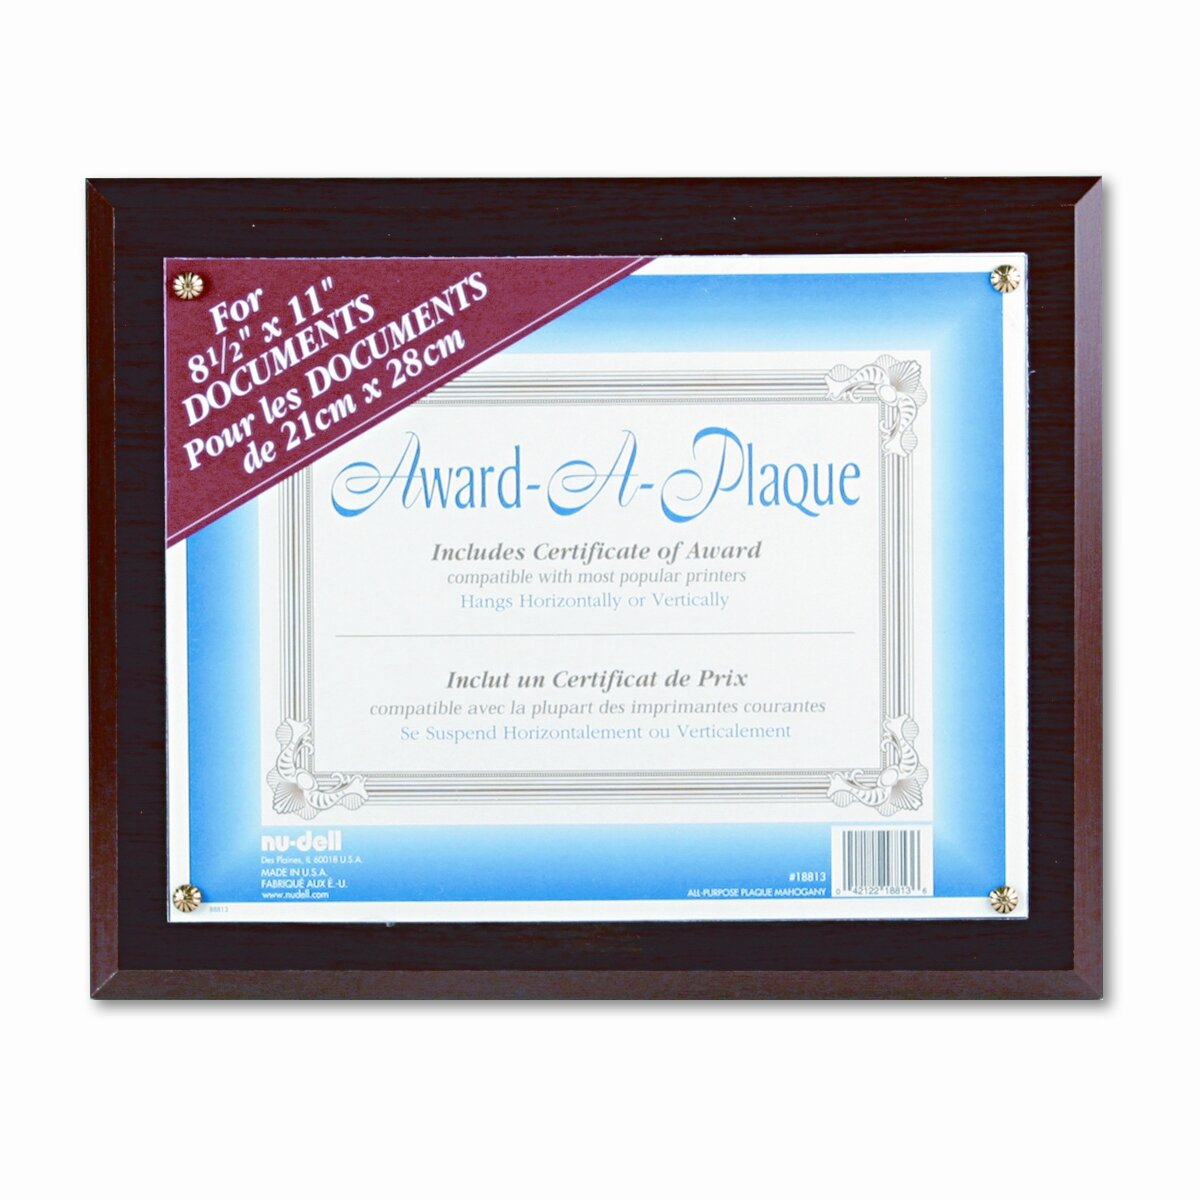 nu dell award a plaque document holder acrylic plastic 10 1 2 x 13 wayfair. Black Bedroom Furniture Sets. Home Design Ideas